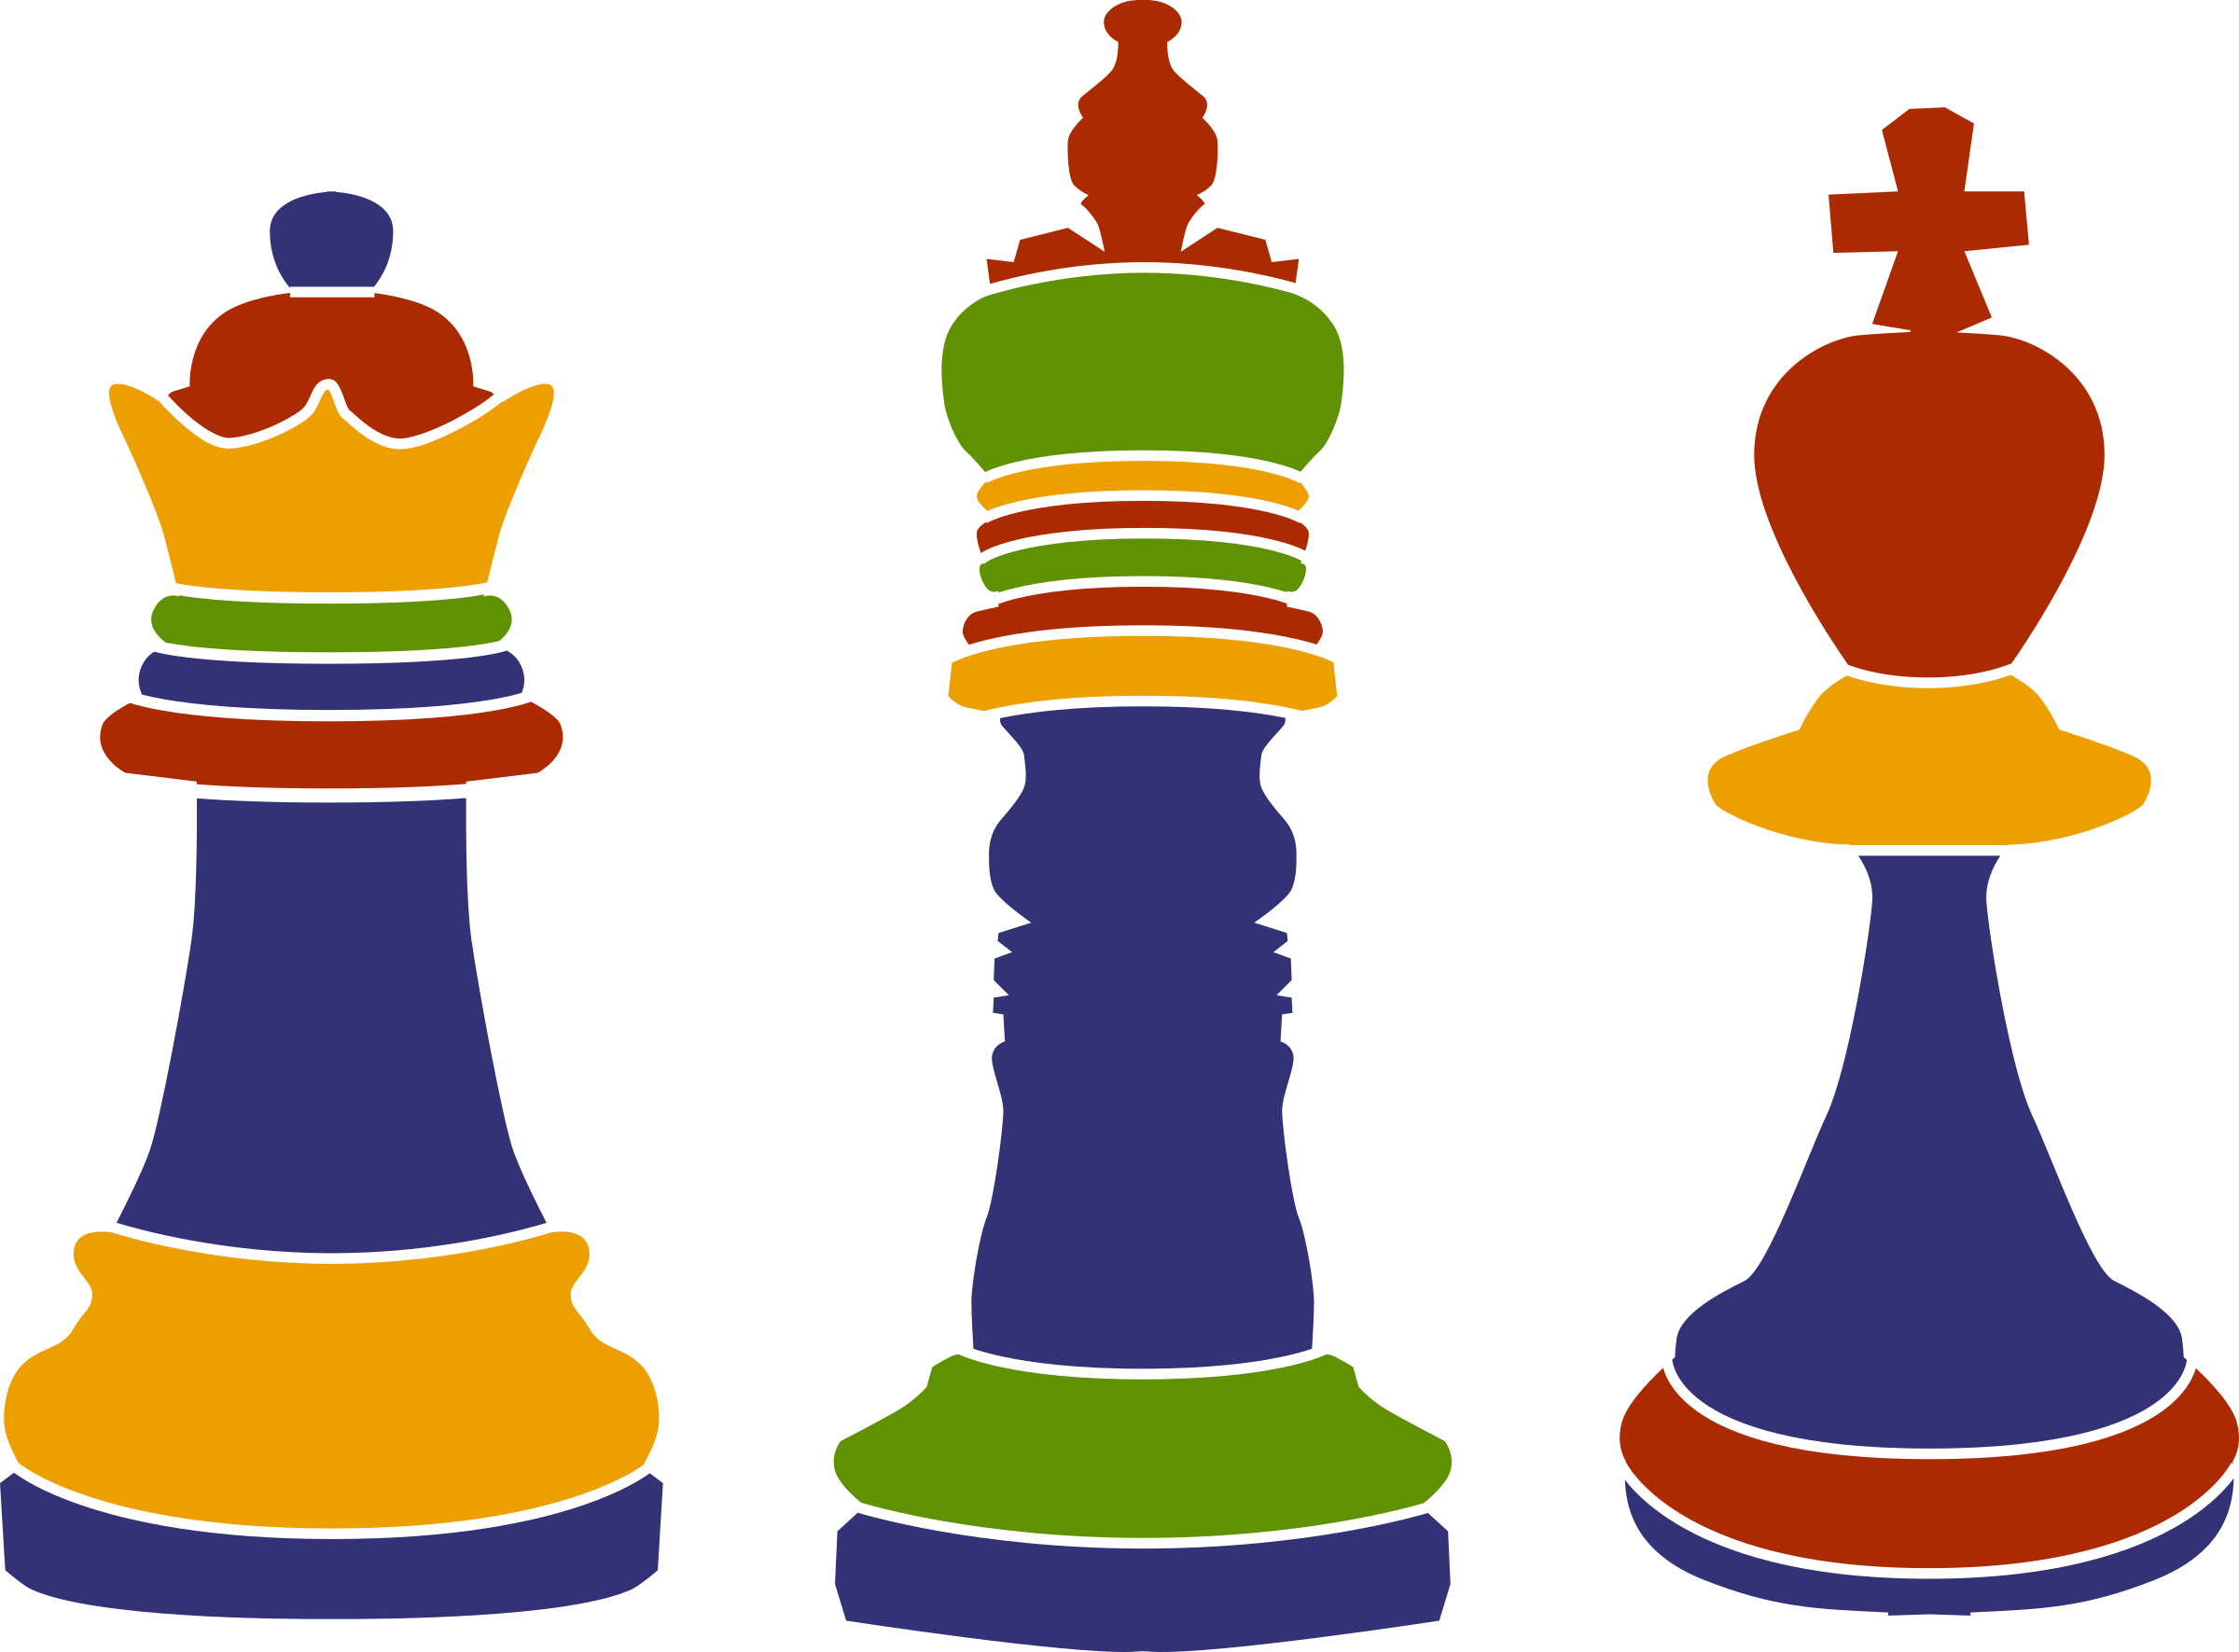 3 Chess Kings by Klàro